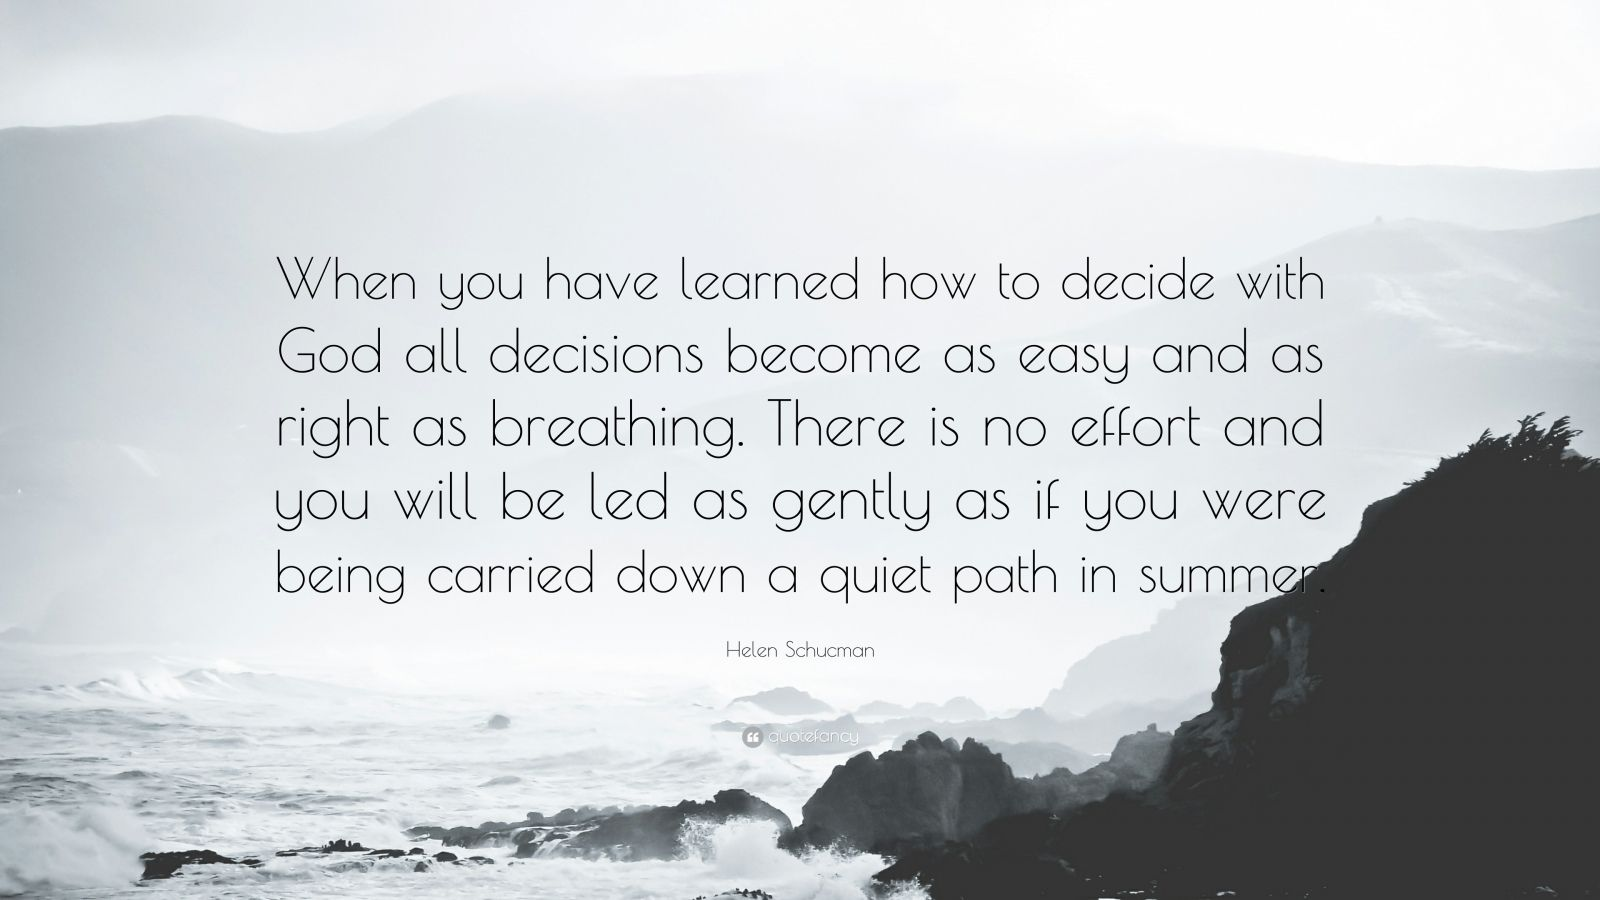 """Helen Schucman Quote: """"When you have learned how to decide with God all decisions become as easy and as right as breathing. There is no effort and you will be led as gently as if you were being carried down a quiet path in summer."""""""